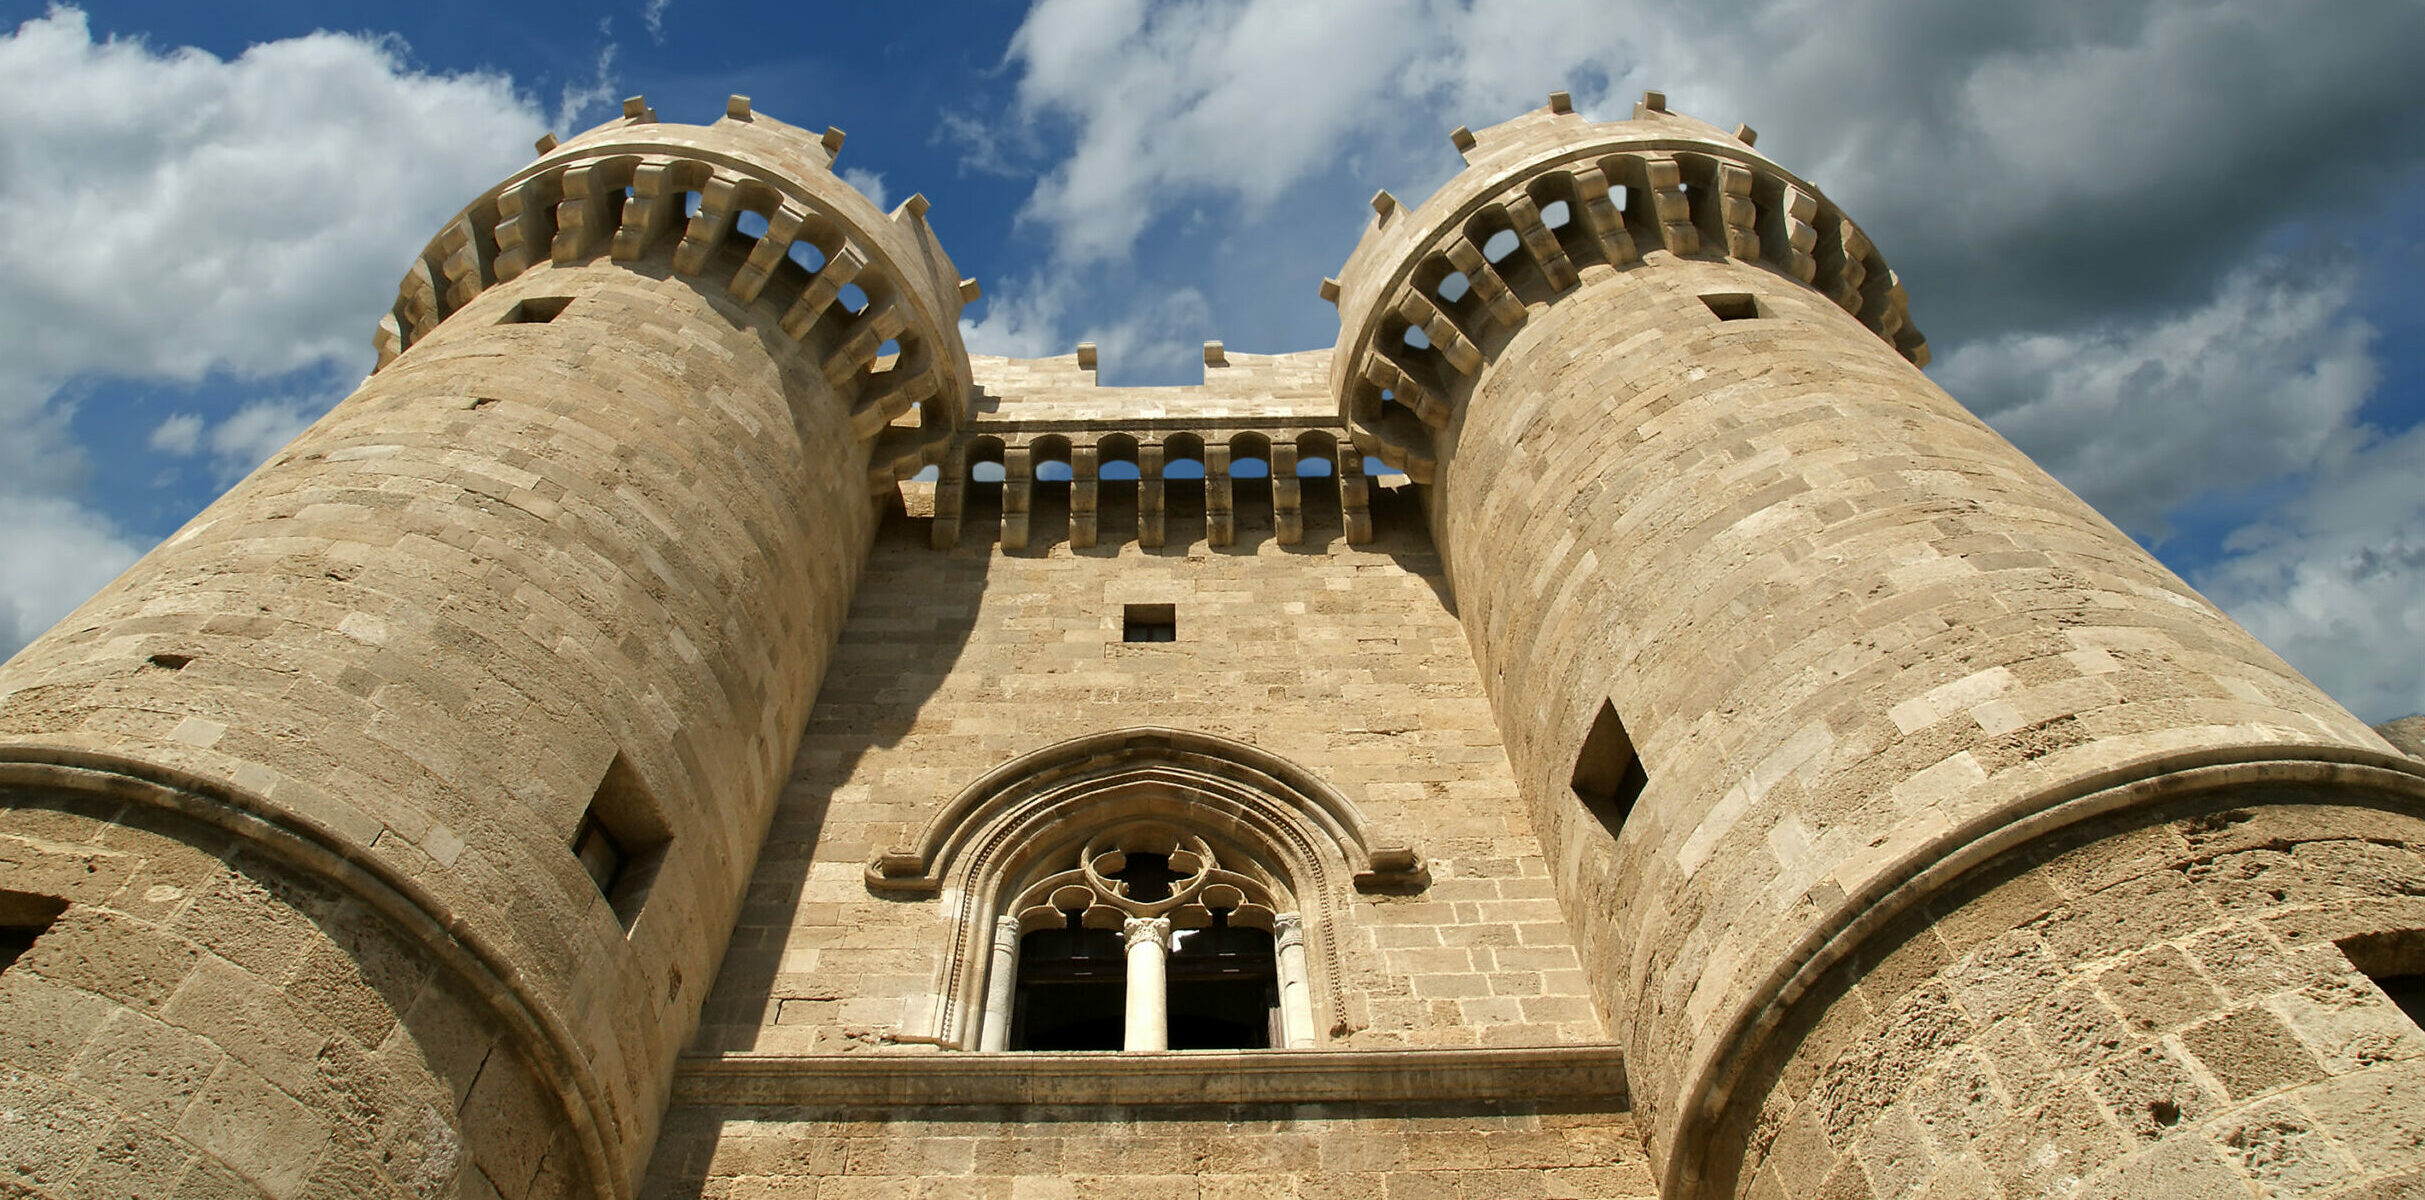 Rhodes: The unique sights of the Medieval city